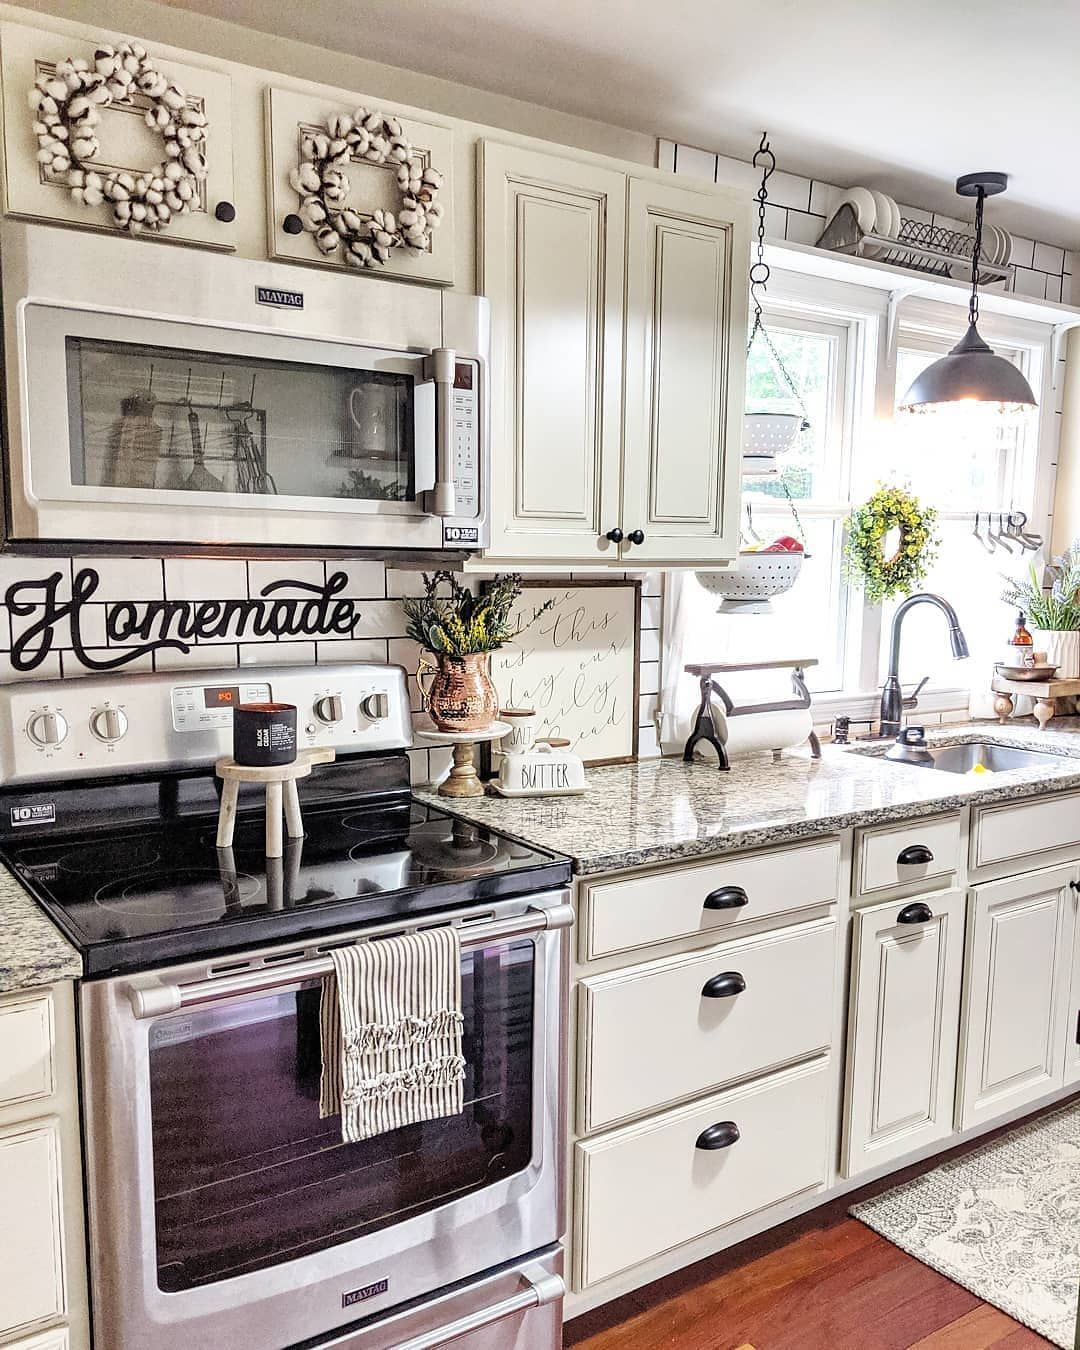 "Farmhouse Homes � on Instagram: ""This farmhouse kitchen is so gorgeous! � What do you think? What would be the first meal you would cook here? � TAG a friend who will love…"""